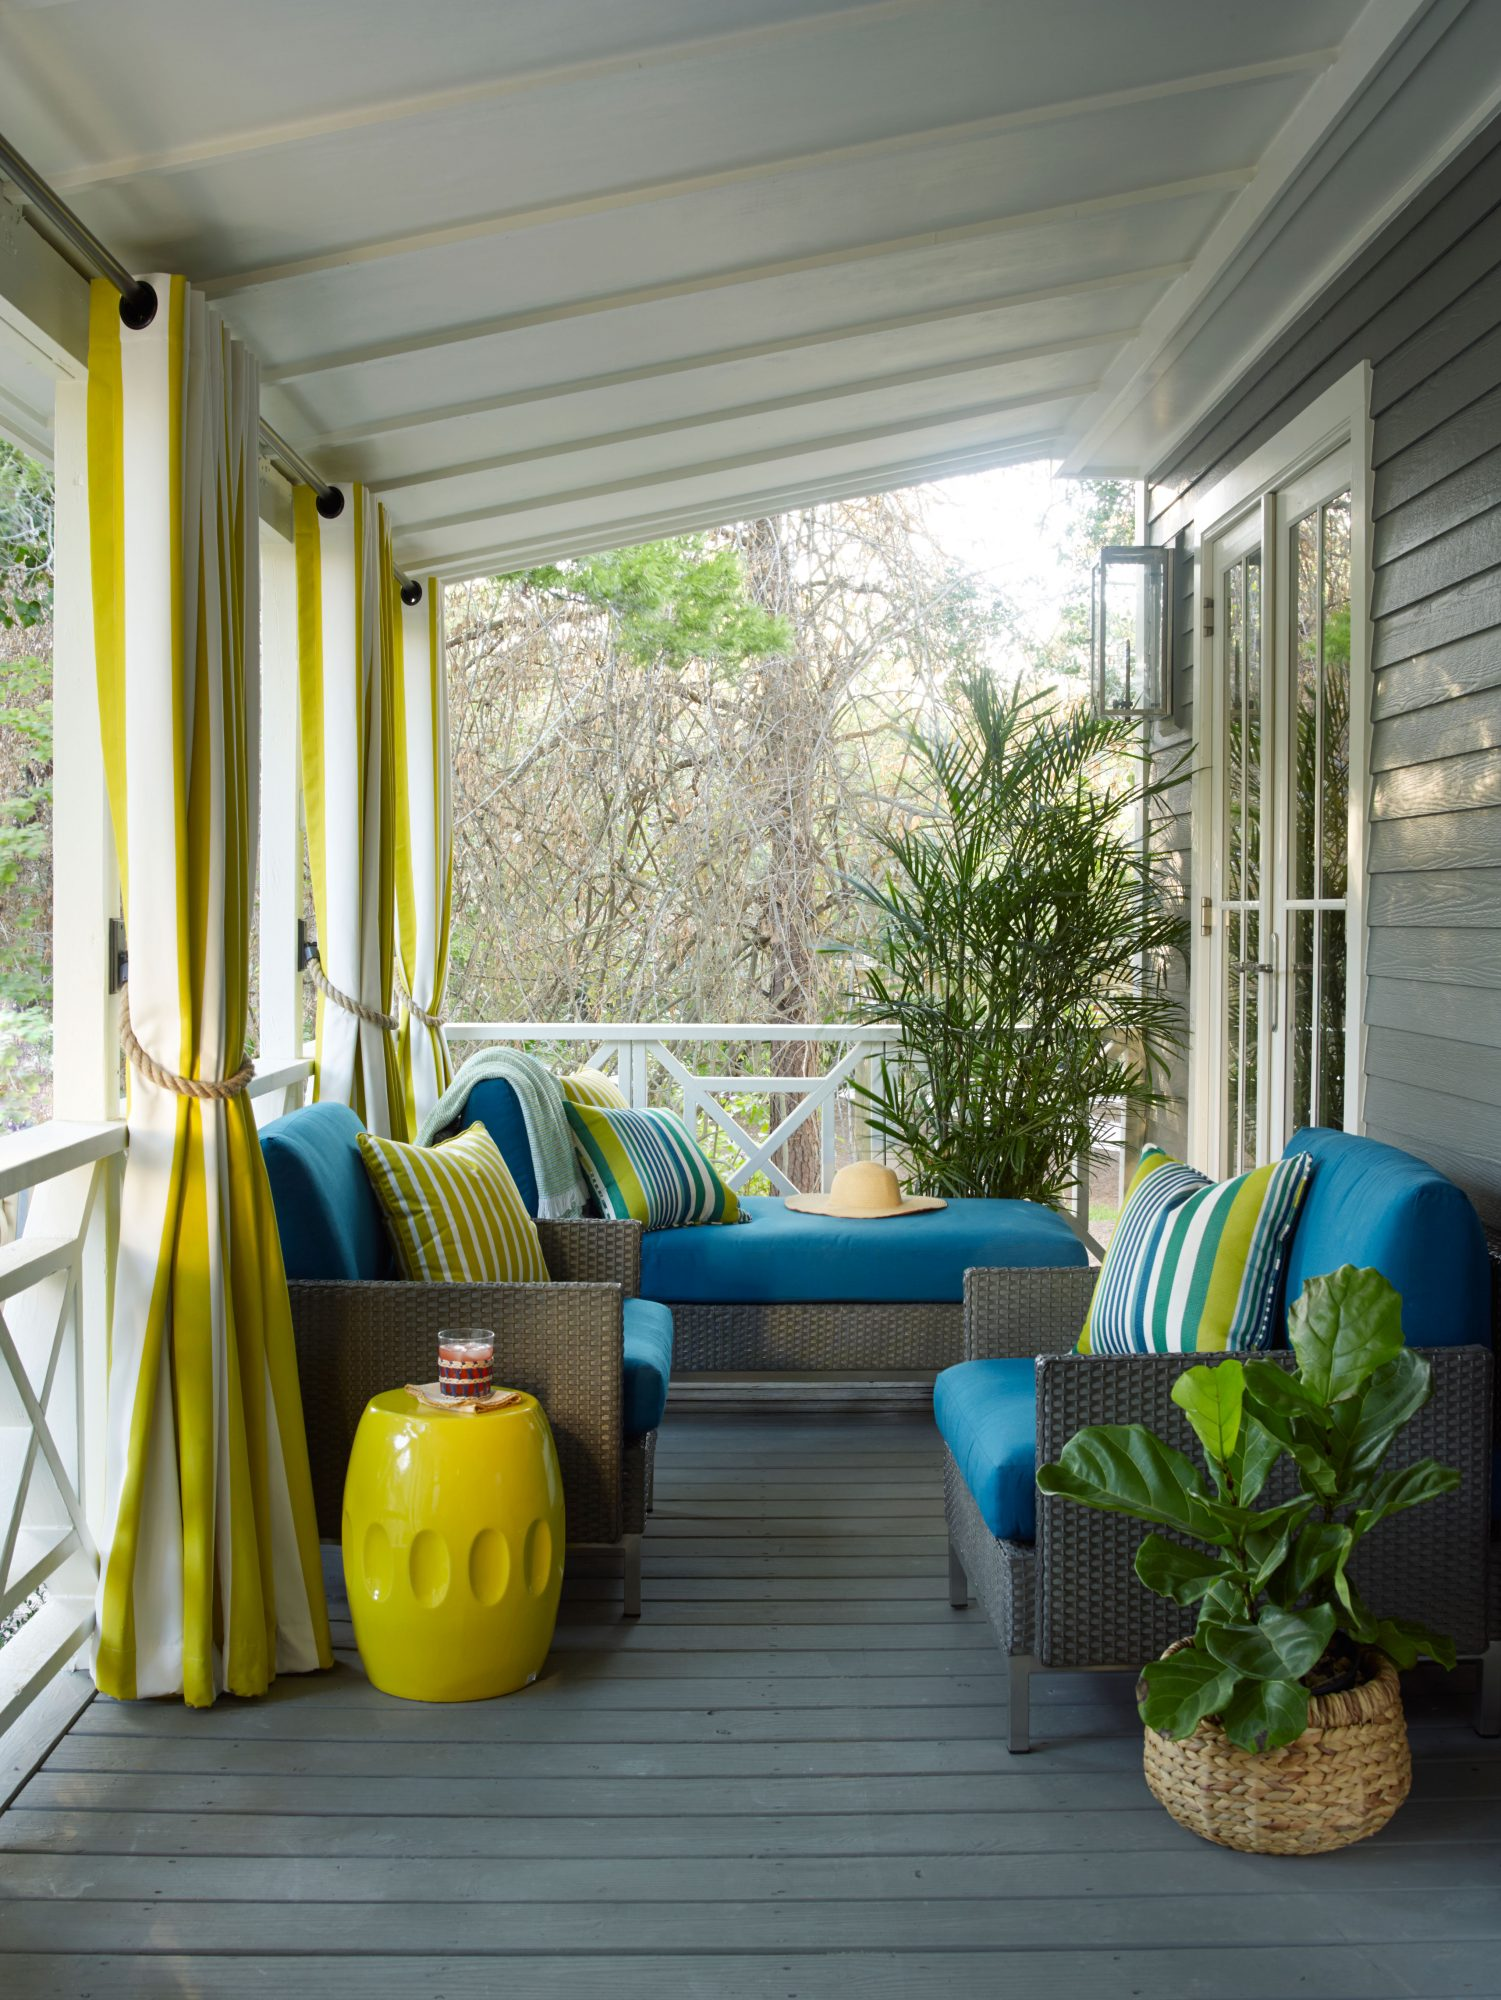 A narrow porch can make for a surprisingly accommodating outdoor room, as evidenced by our Idea Cottage in Seagrove, Florida. Designer Paige Schnell incorporated a playful palette of teal and yellow (we love the striped curtains with nautical rope ties) for a warm front porch welcome.